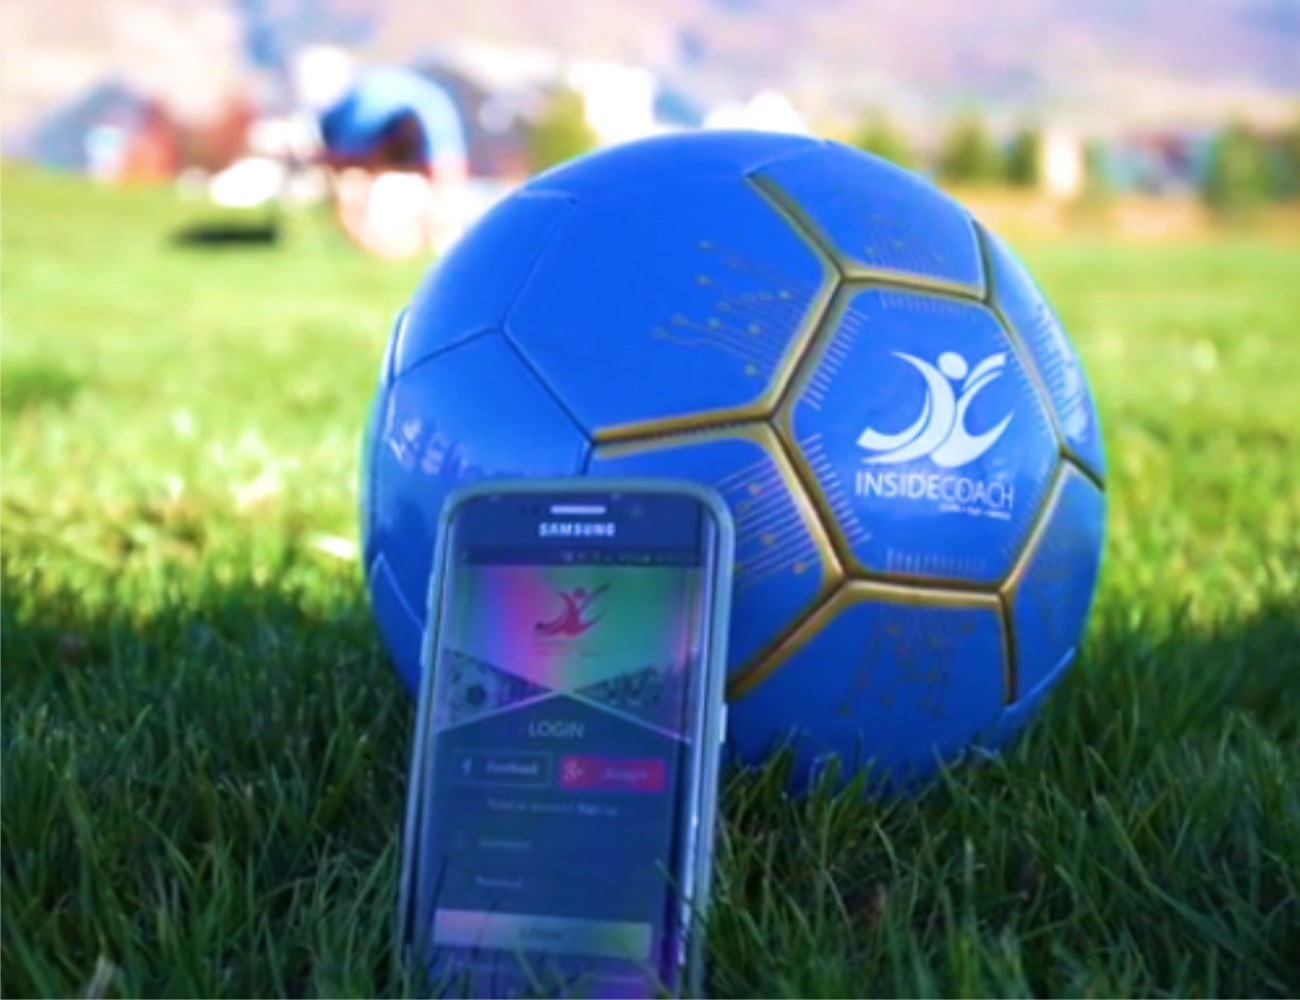 InsideCoach – Connected Smart Soccer Ball